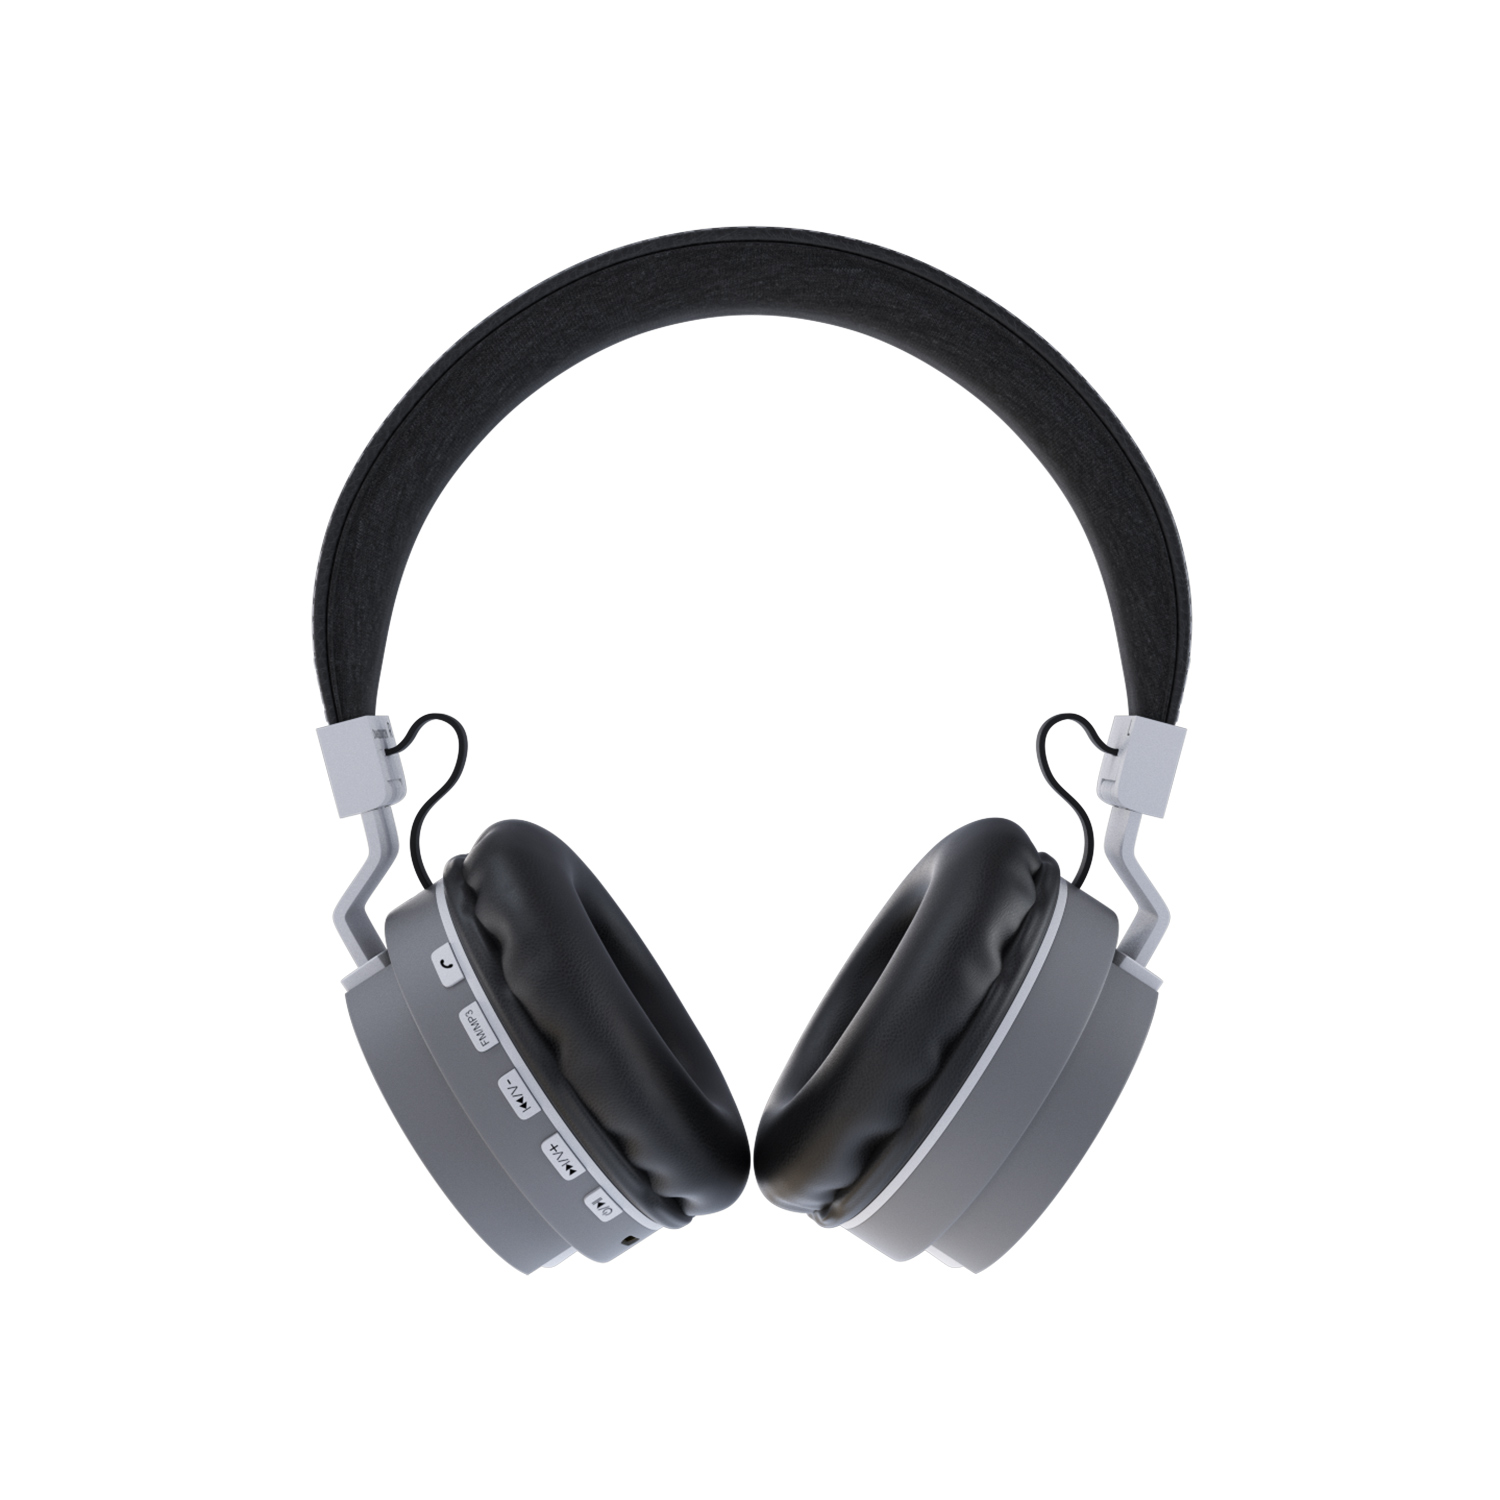 CORSECA Carnival On-Ear Wireless Headphones with Built in Mic DM6200 (Grey)